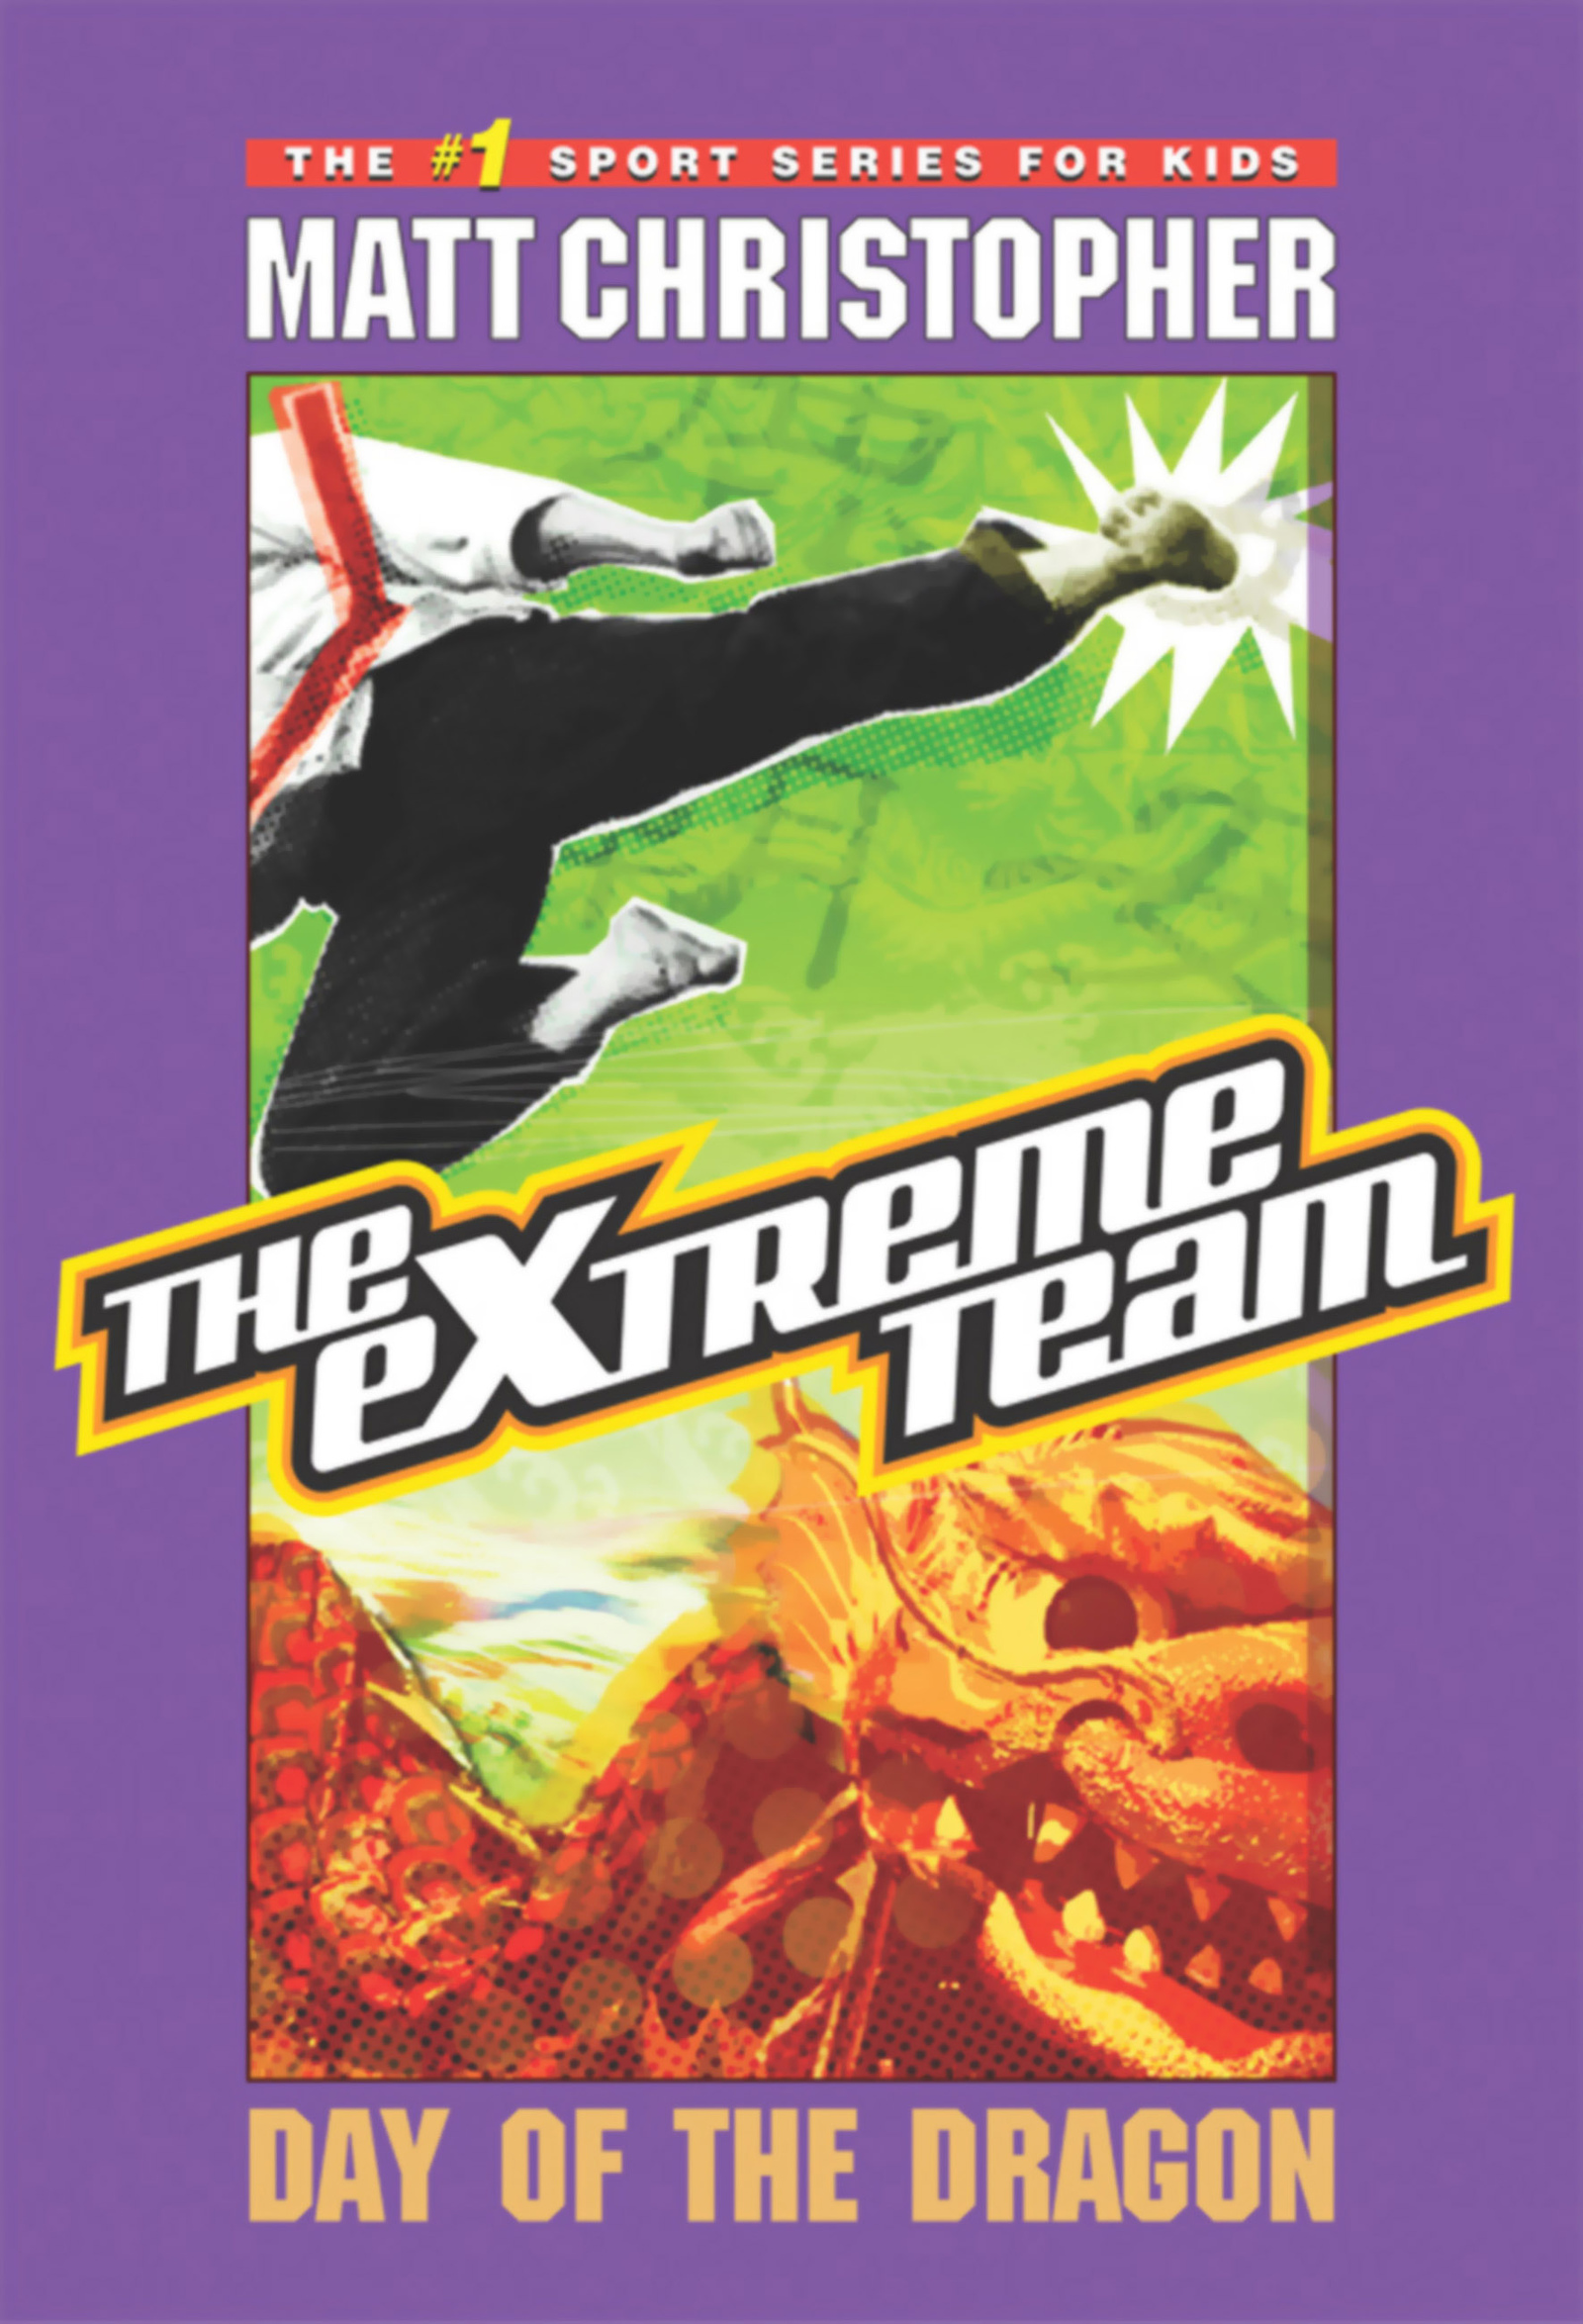 The Extreme Team #2